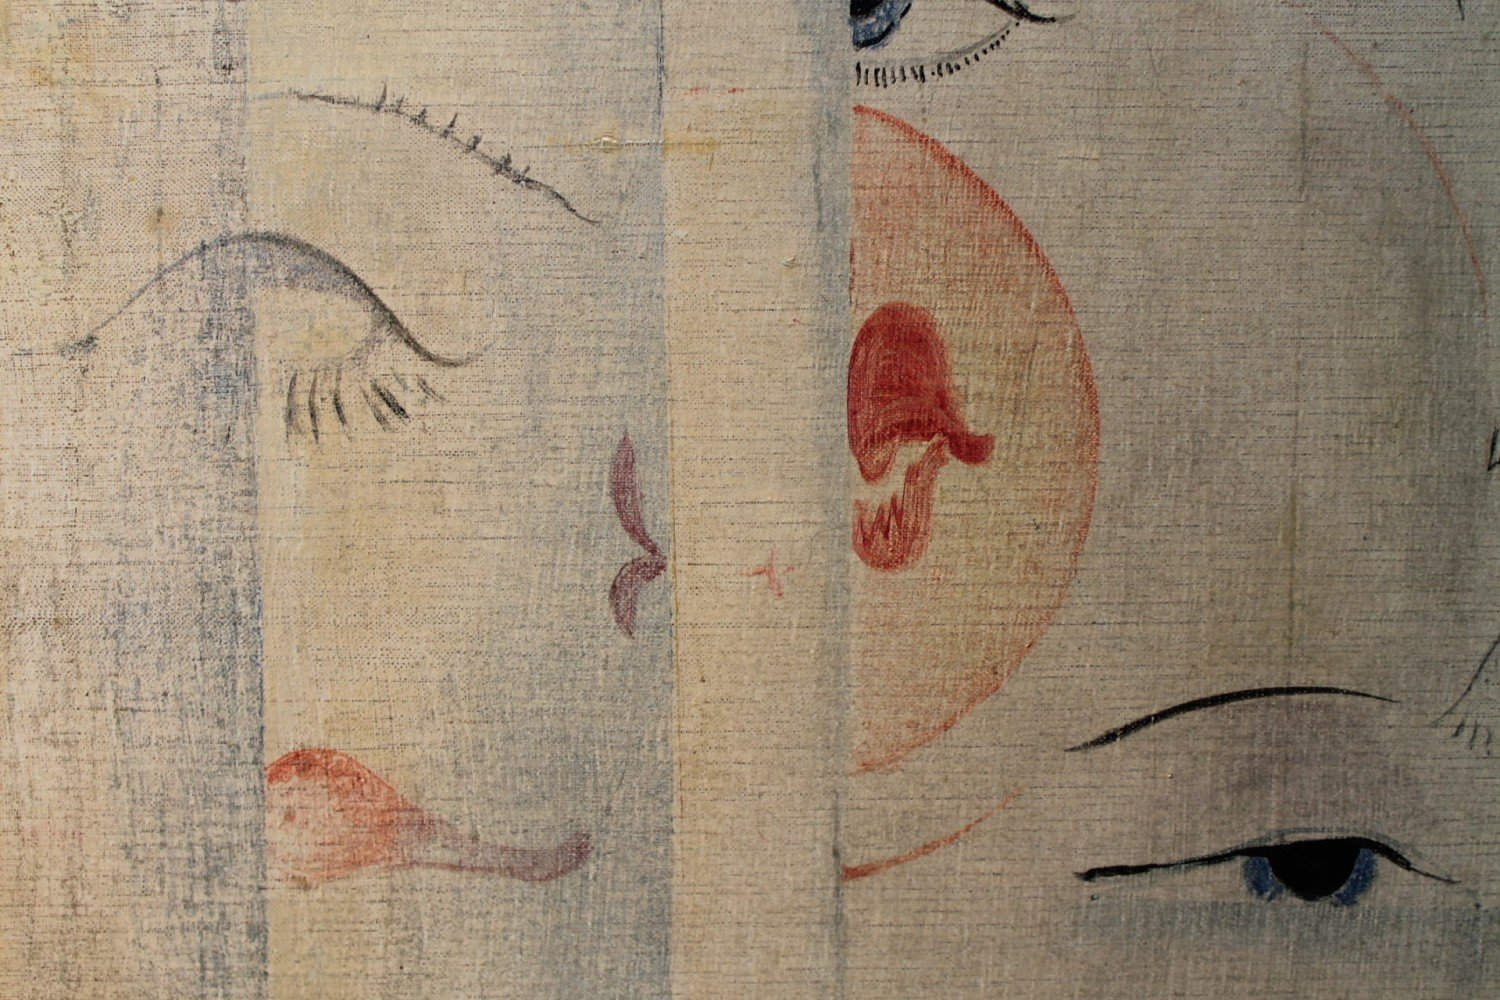 Surrealist Eyes and Lips by Lawrence Murphy